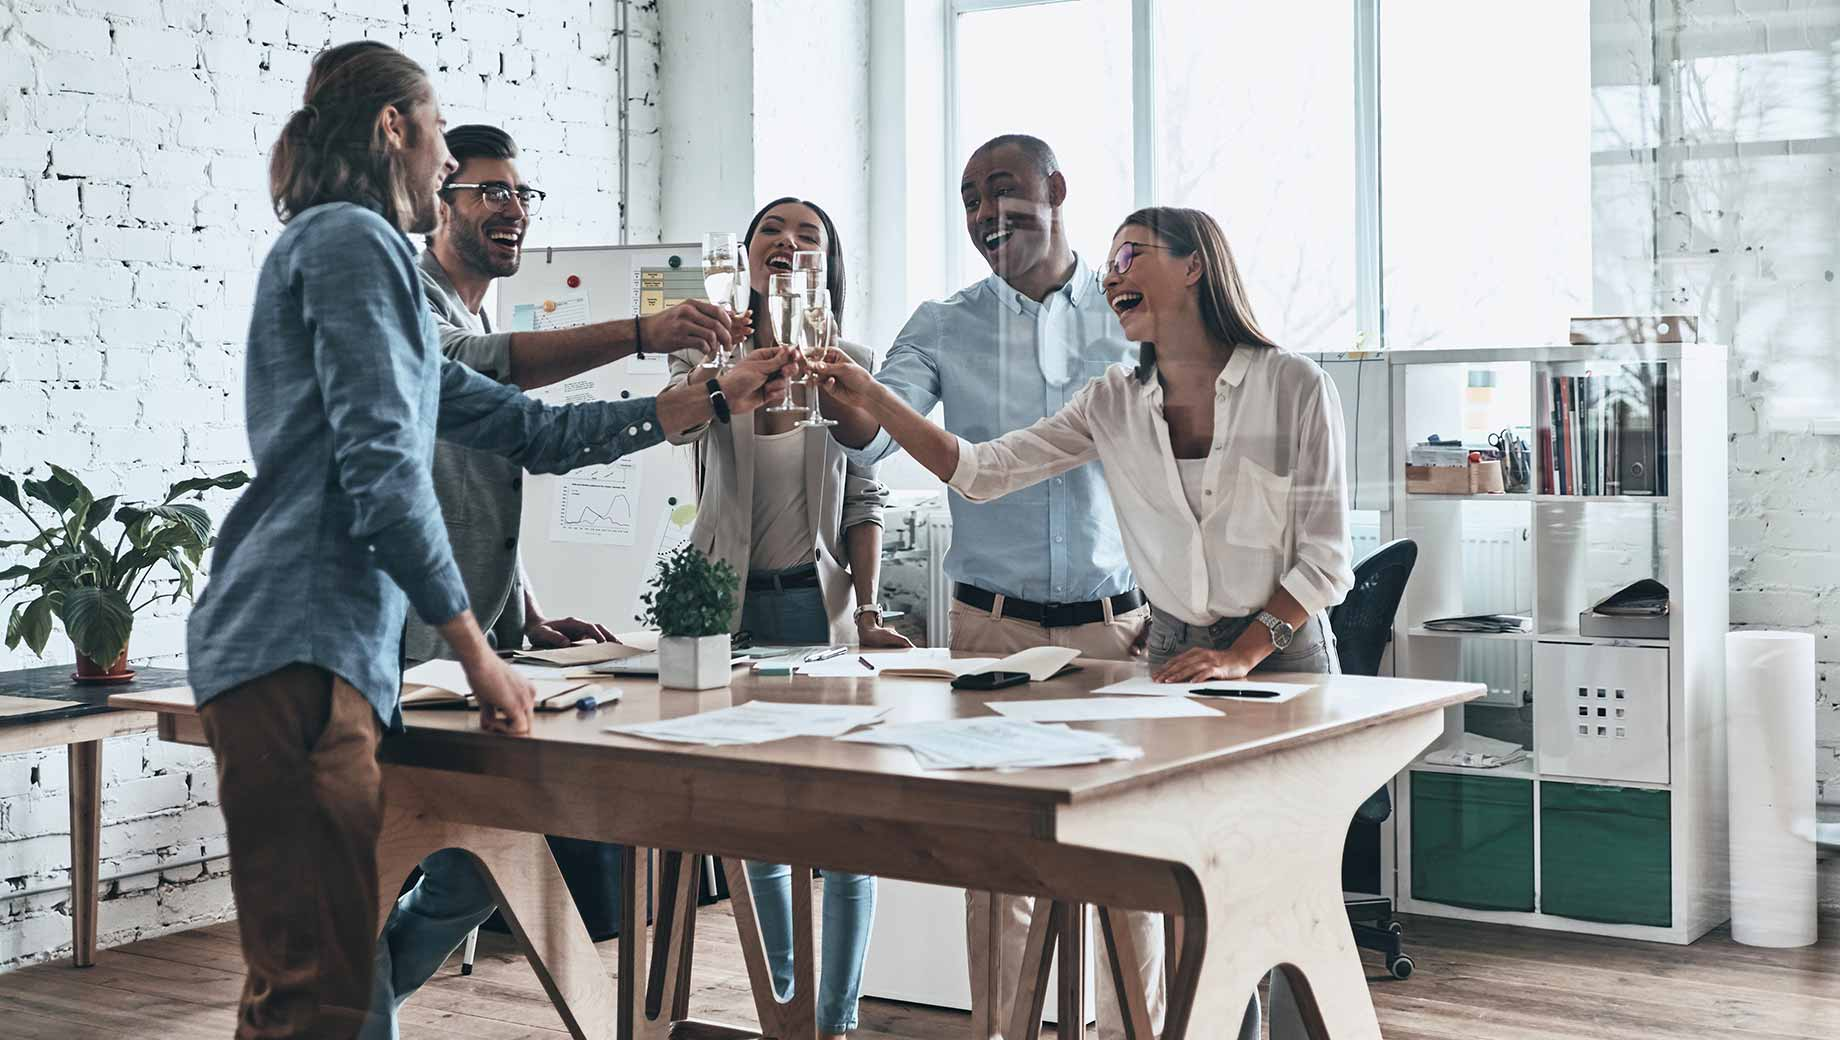 Top 10 Workplace Leadership Articles of 2019